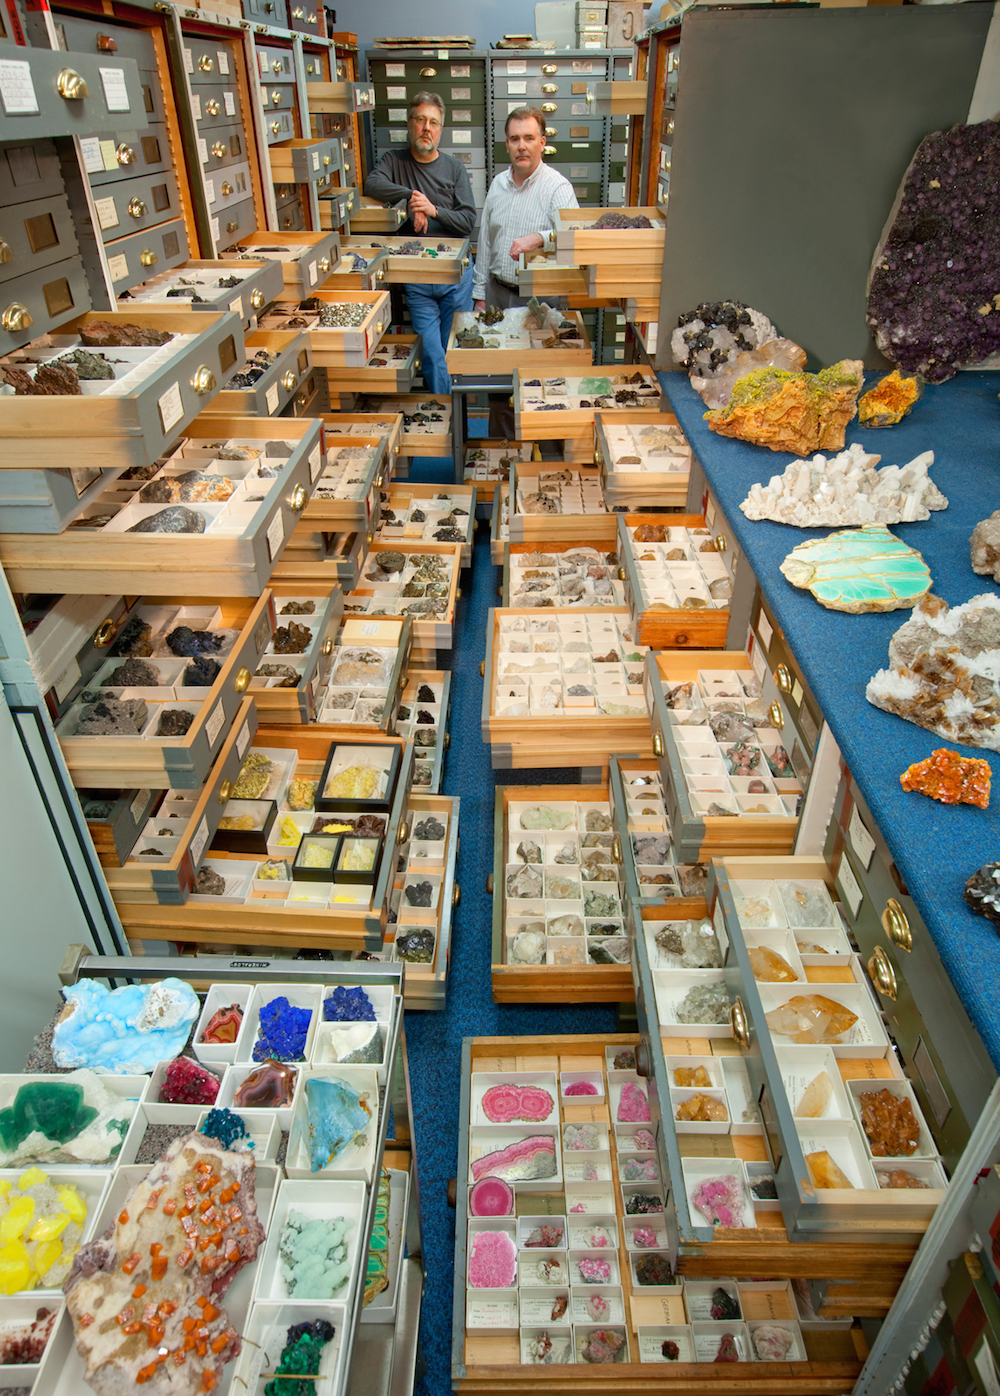 """An assortment of mineral specimens from the Department of Mineral Sciences' collections are displayed in the storage vault known as the """"Blue Room,"""" at the Smithsonian Institution's National Museum of Natural History. Mineral Sciences staff present are (left) Paul Pohwat, Collections Manager of Minerals, and (right) Russell Feather, Collections Manager of Gems."""